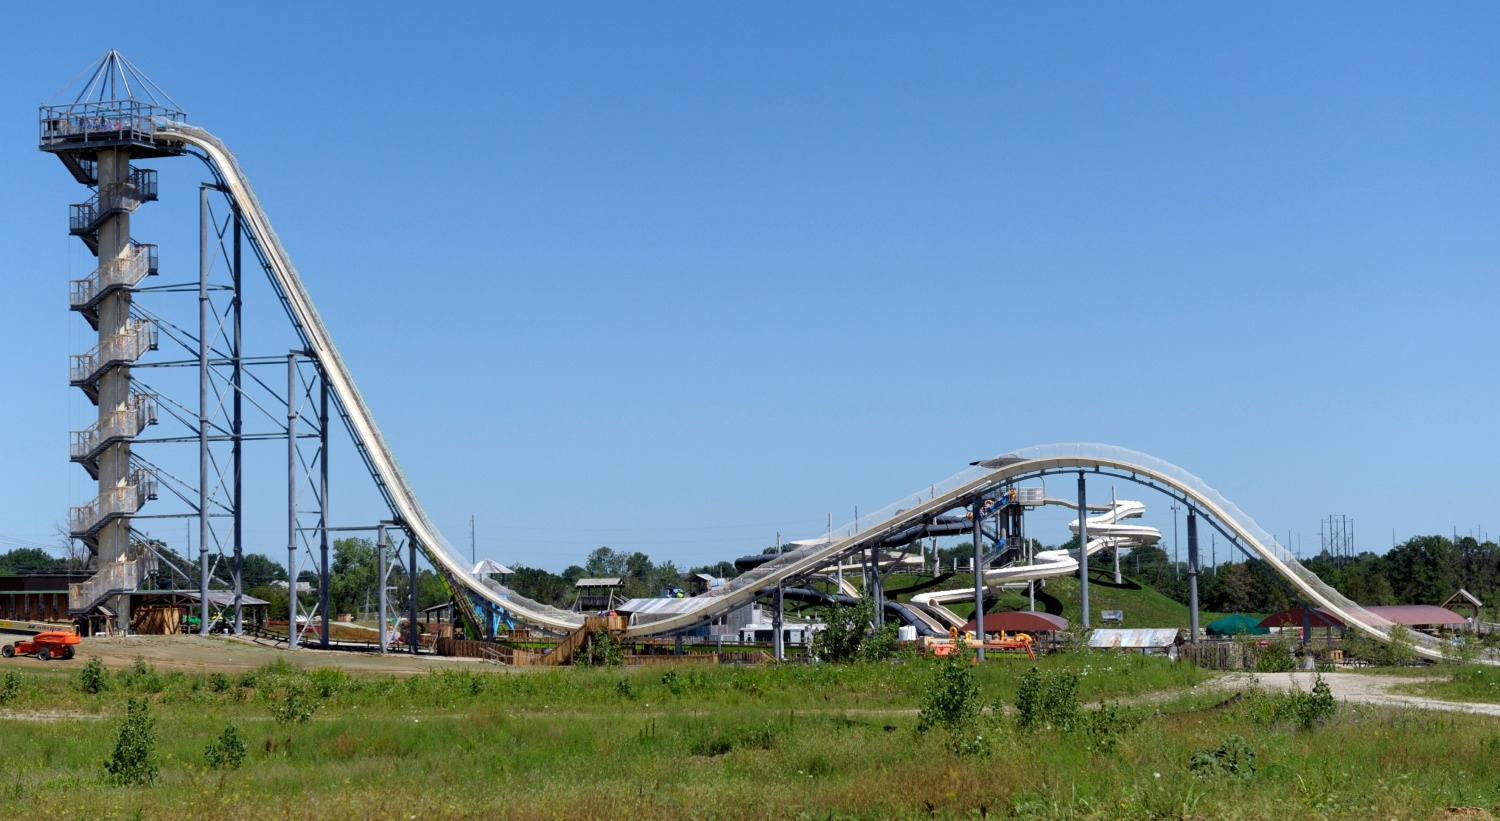 A general view of the Verrückt waterslide at the Schlitterbahn Waterpark in Kansas City, Kansas. The slide, at 168 feet 7 inches (51.38 metres), is the world's tallest waterslide according to the Guinness World Records. It has had its opening postponed three times. [REUTERS/Dave Kaup]